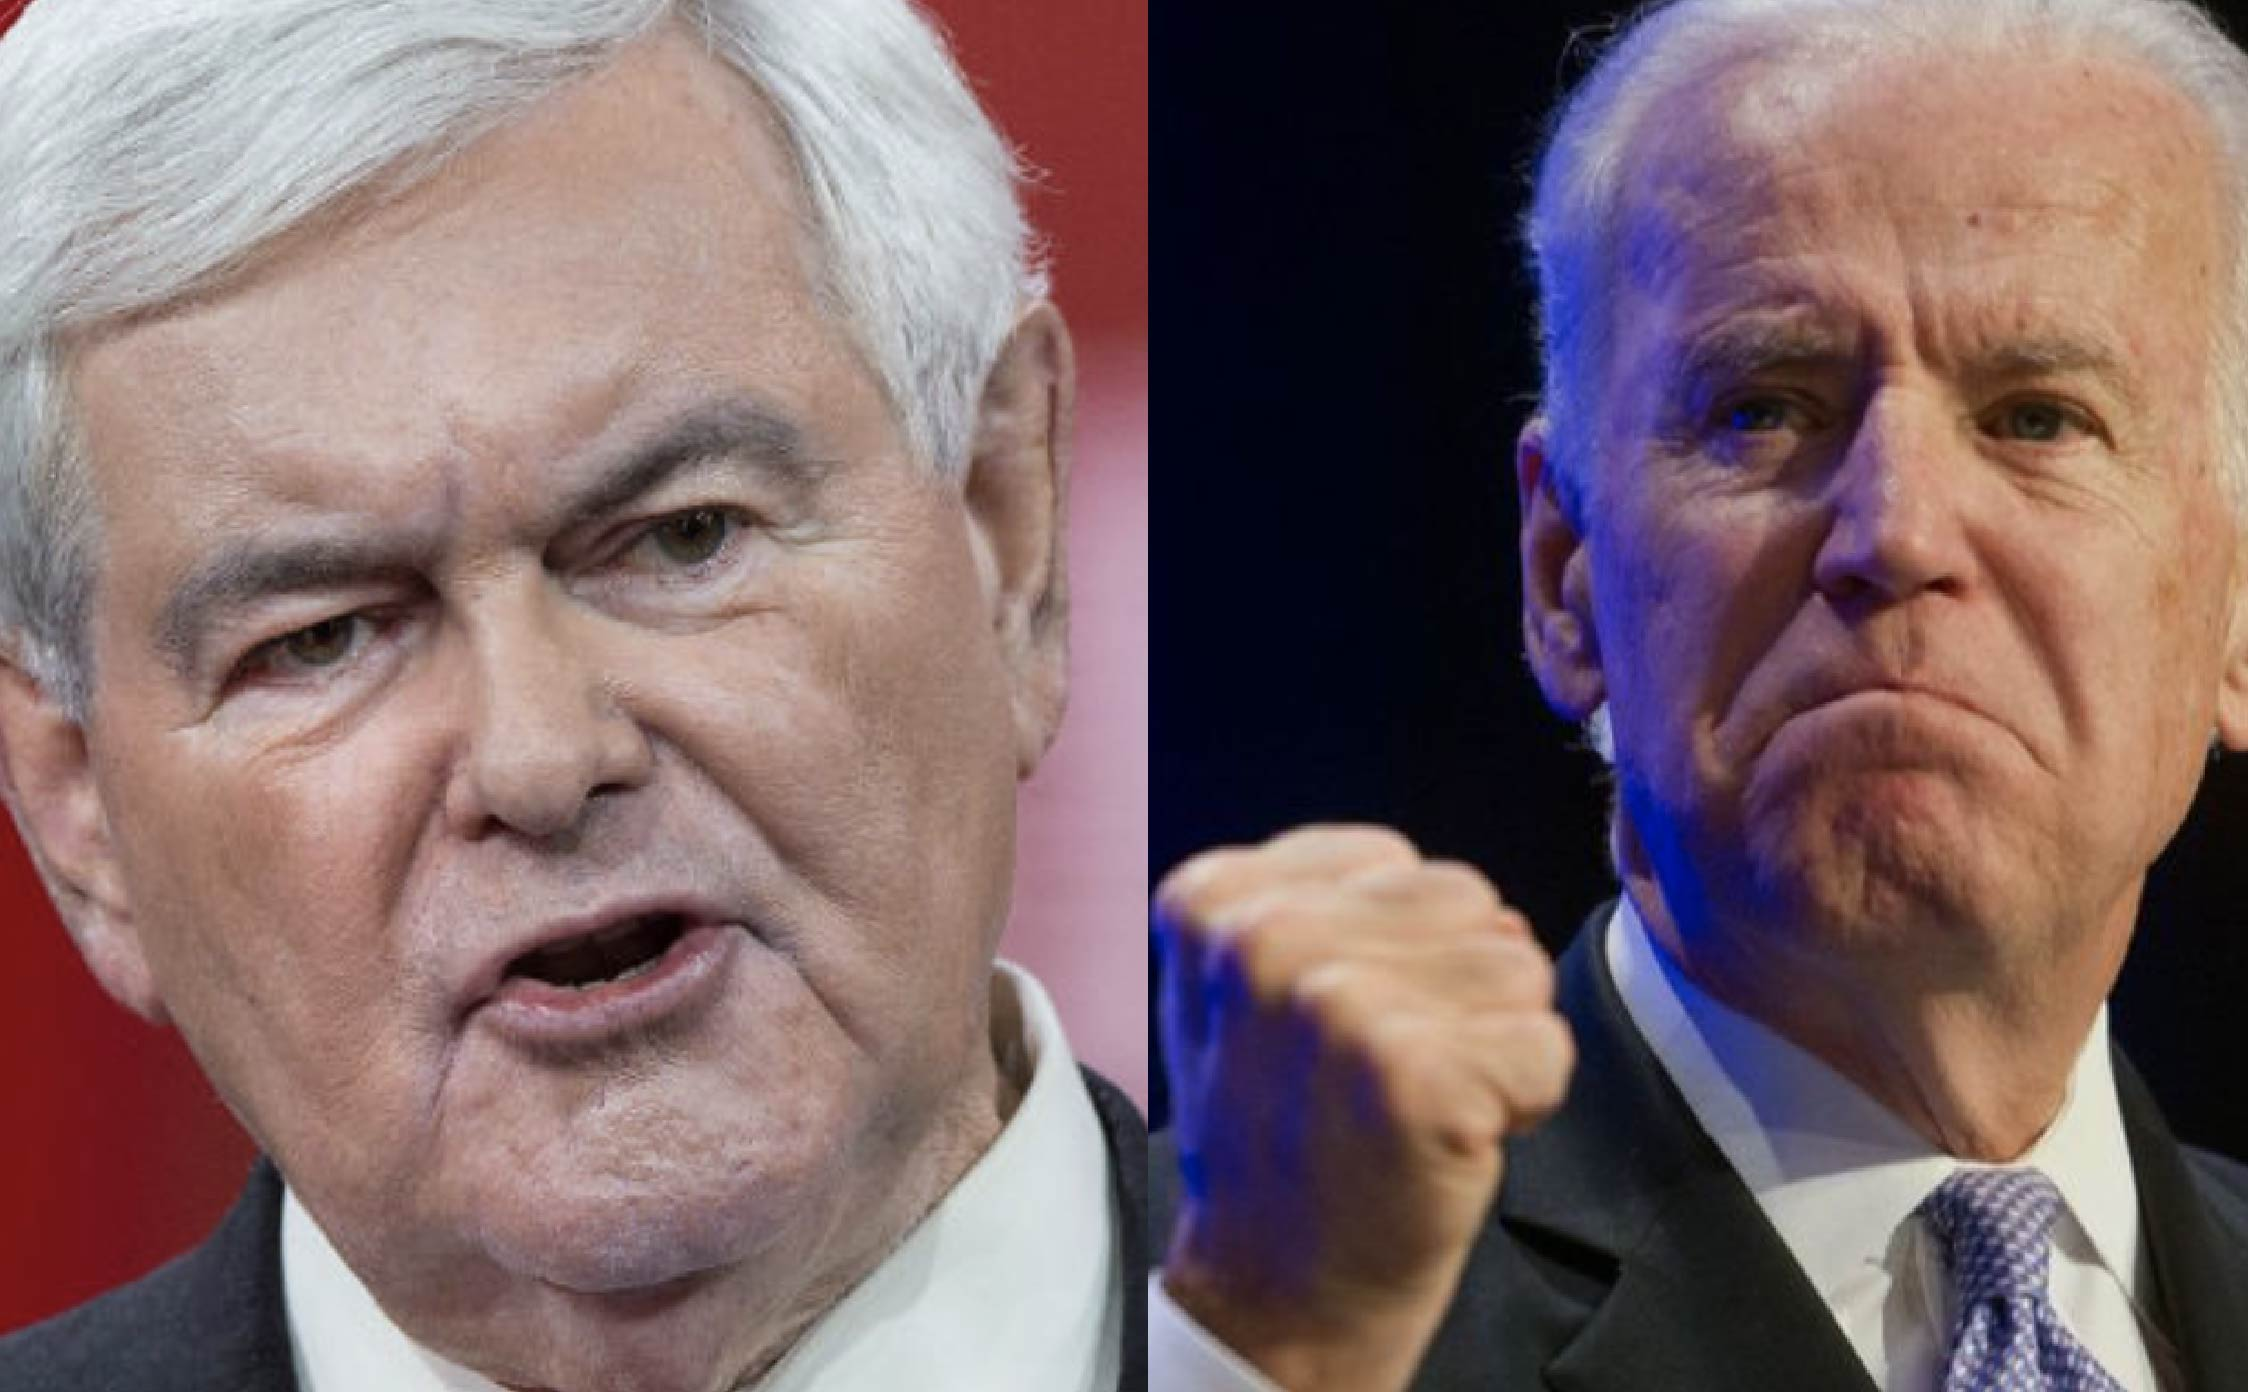 [VIDEO] Newt Has Had Enough With Lyin' Joe Biden...And He Let's It Rip